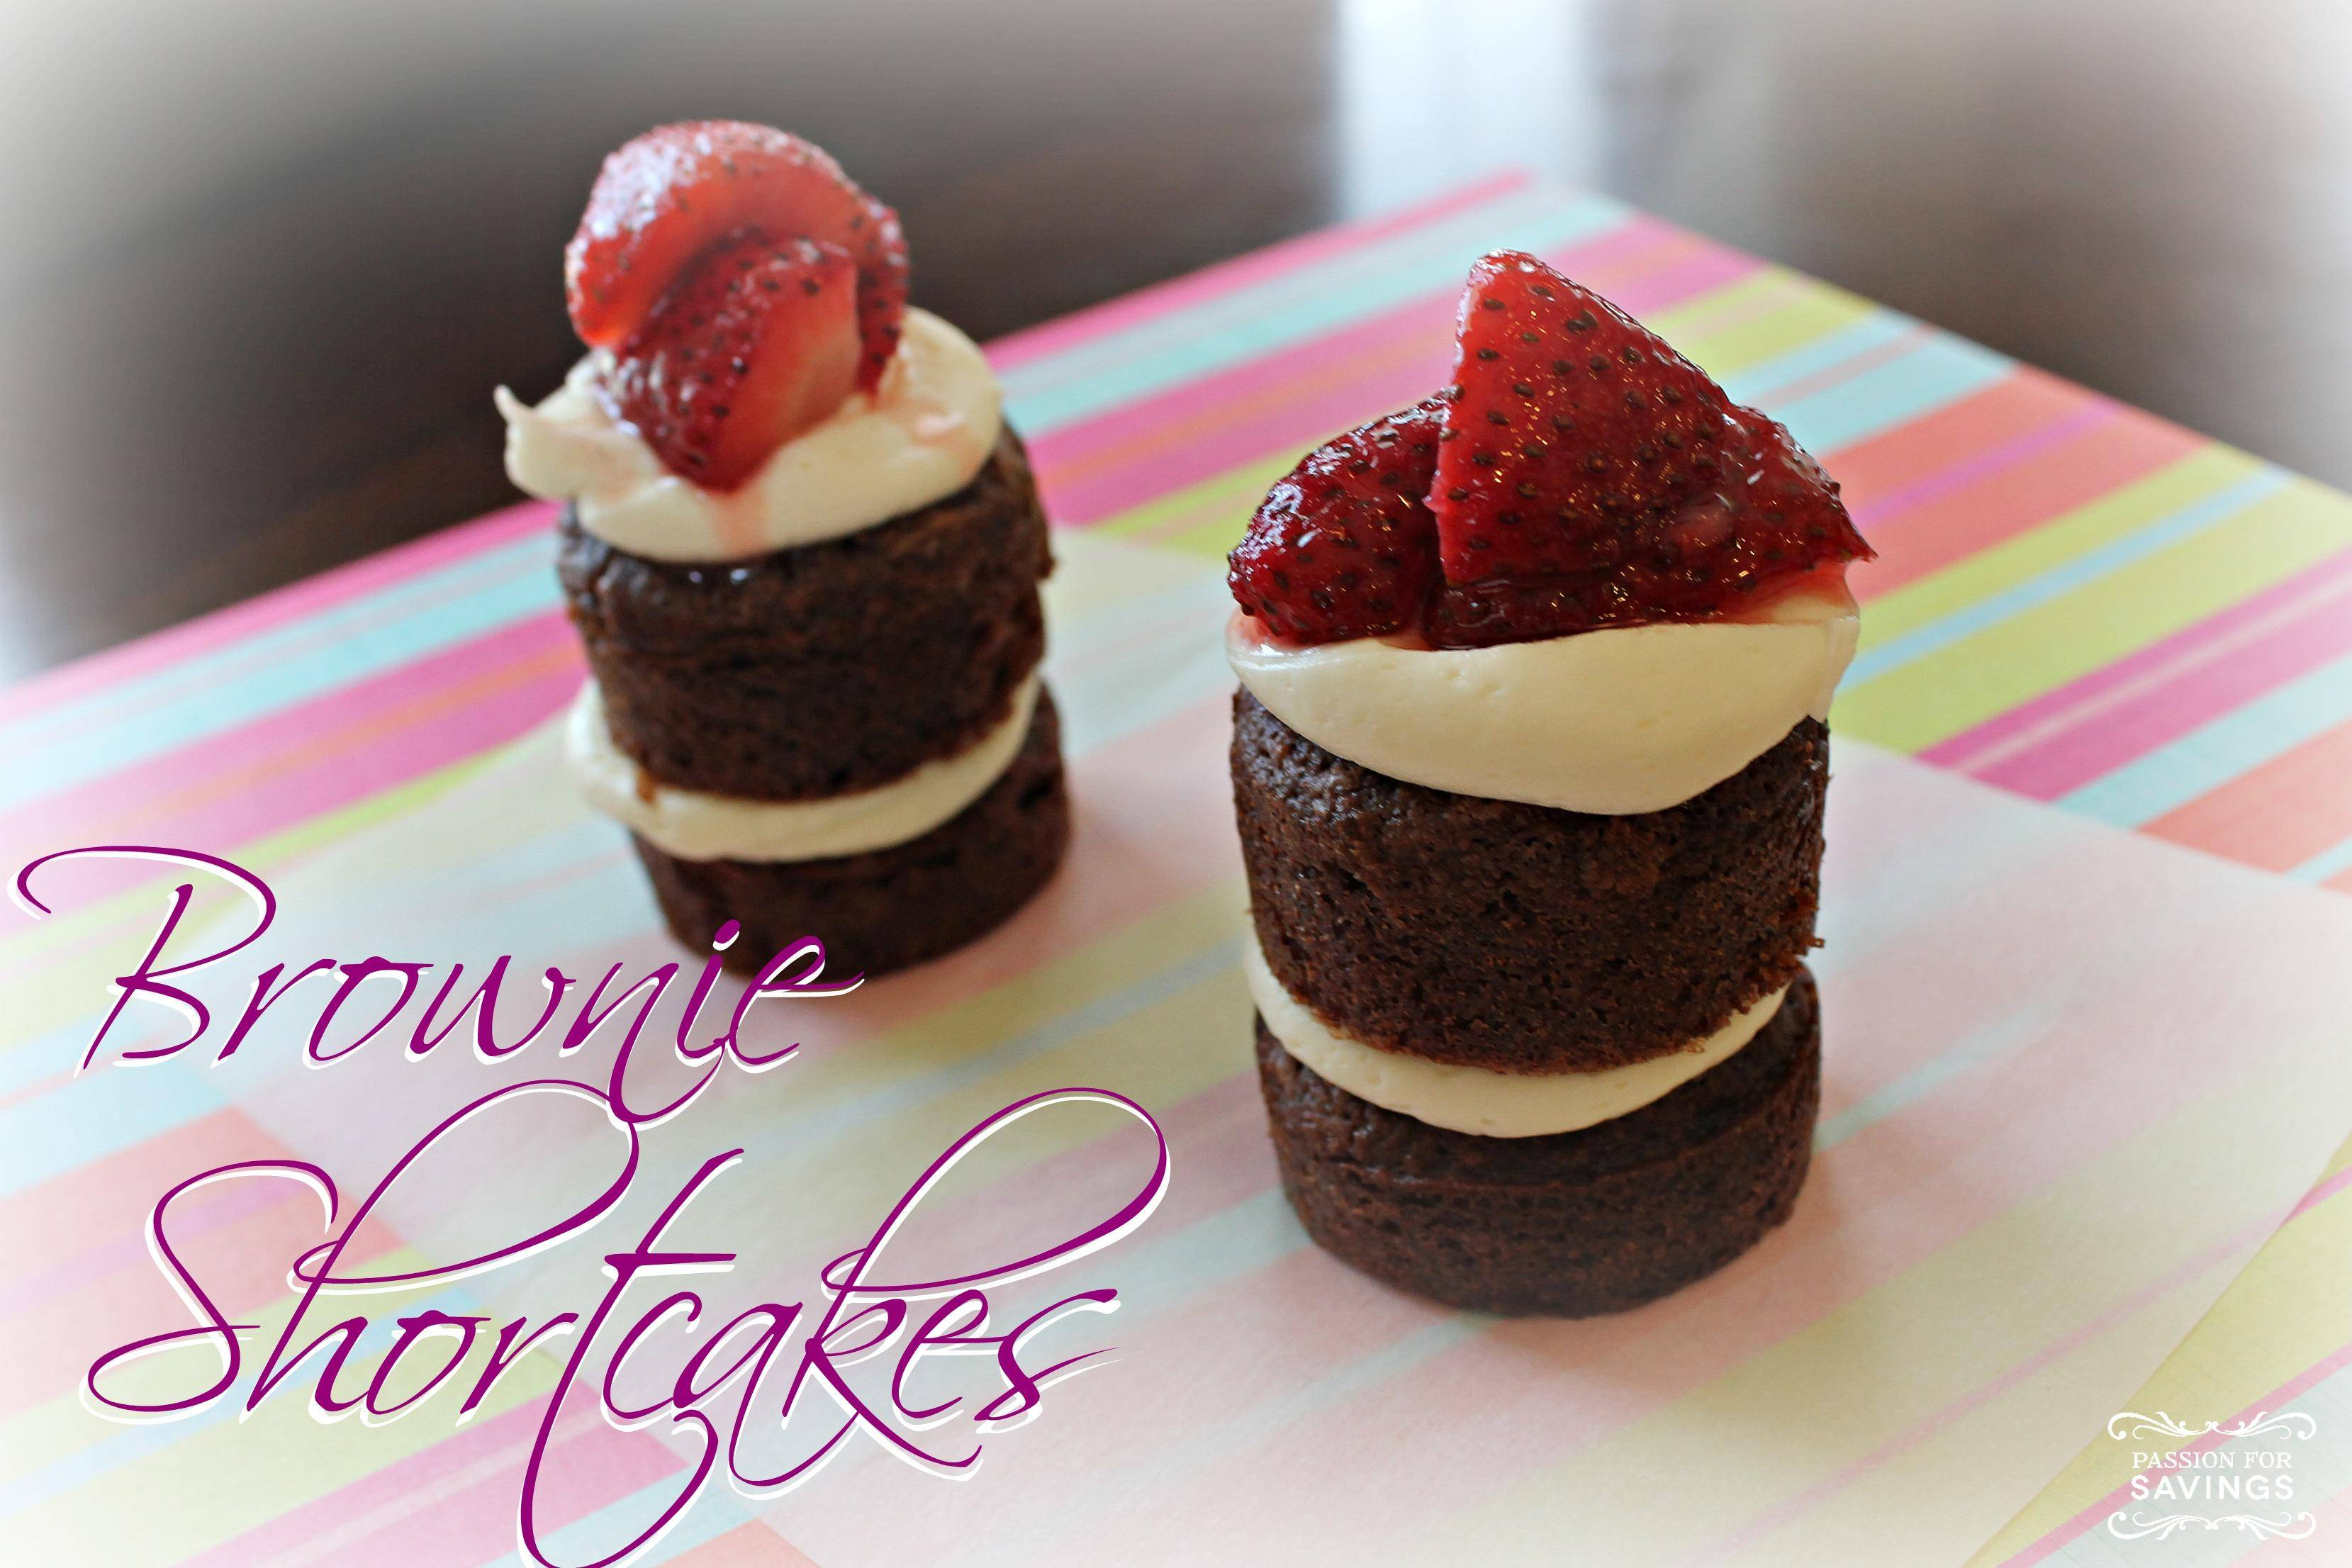 Brownie Shortcakes Recipe